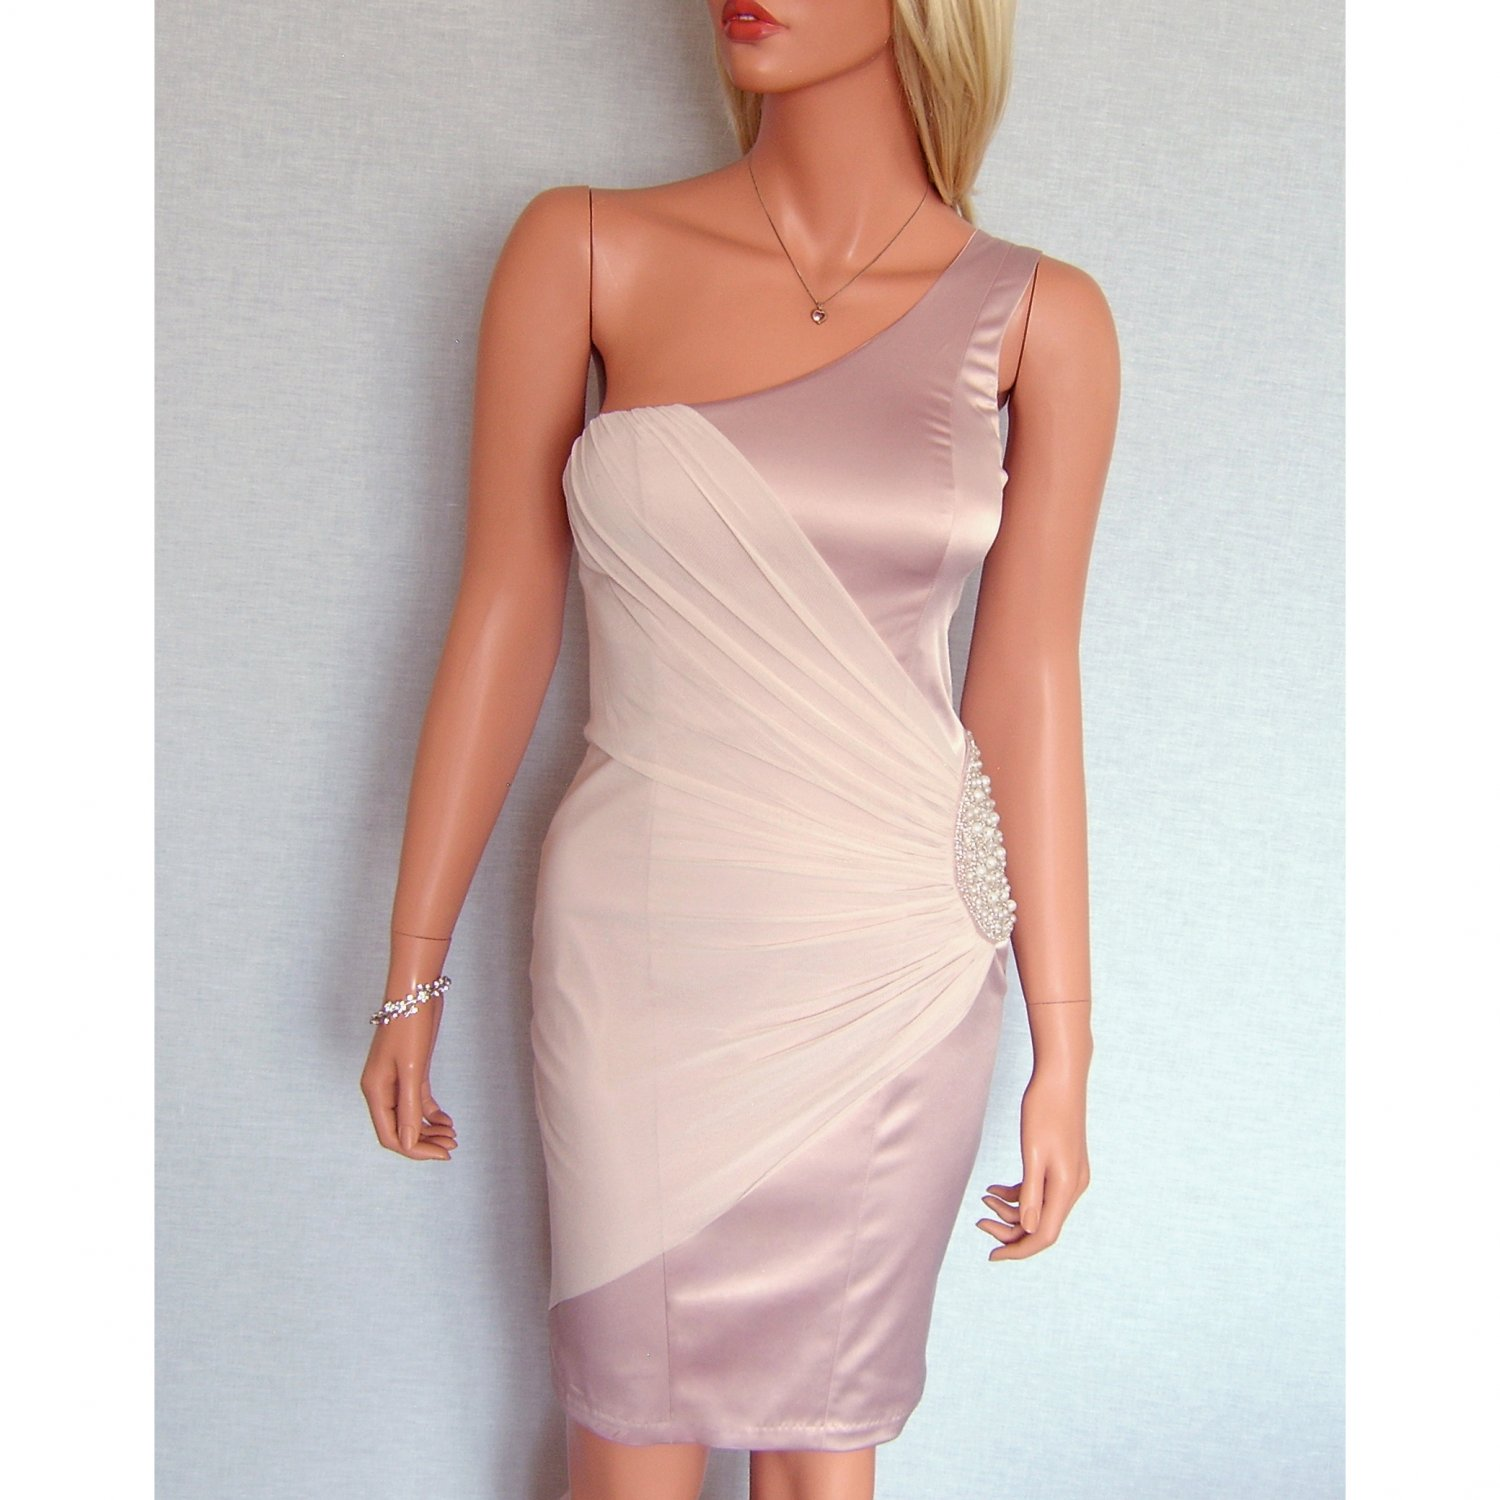 ELISE RYAN TOPSHOP PINK BEADED EVENING BODYCON MINI COCKTAIL CLUB PARTY PROM DRESS UK 12, US 8